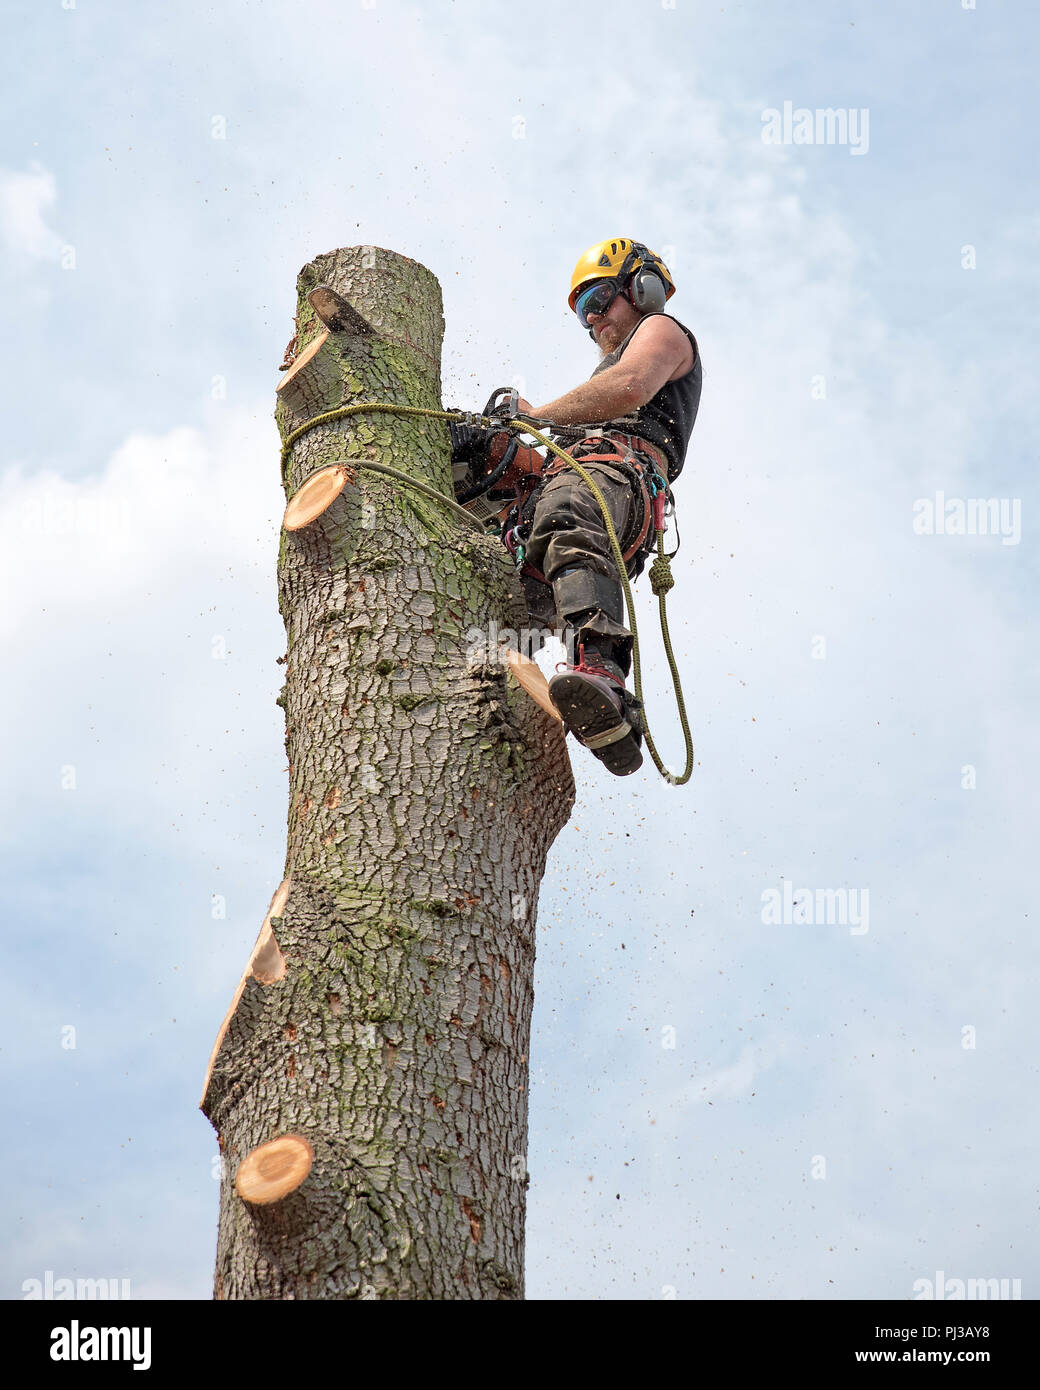 Tree Surgeon using a chainsaw while roped to the top of a tree. - Stock Image